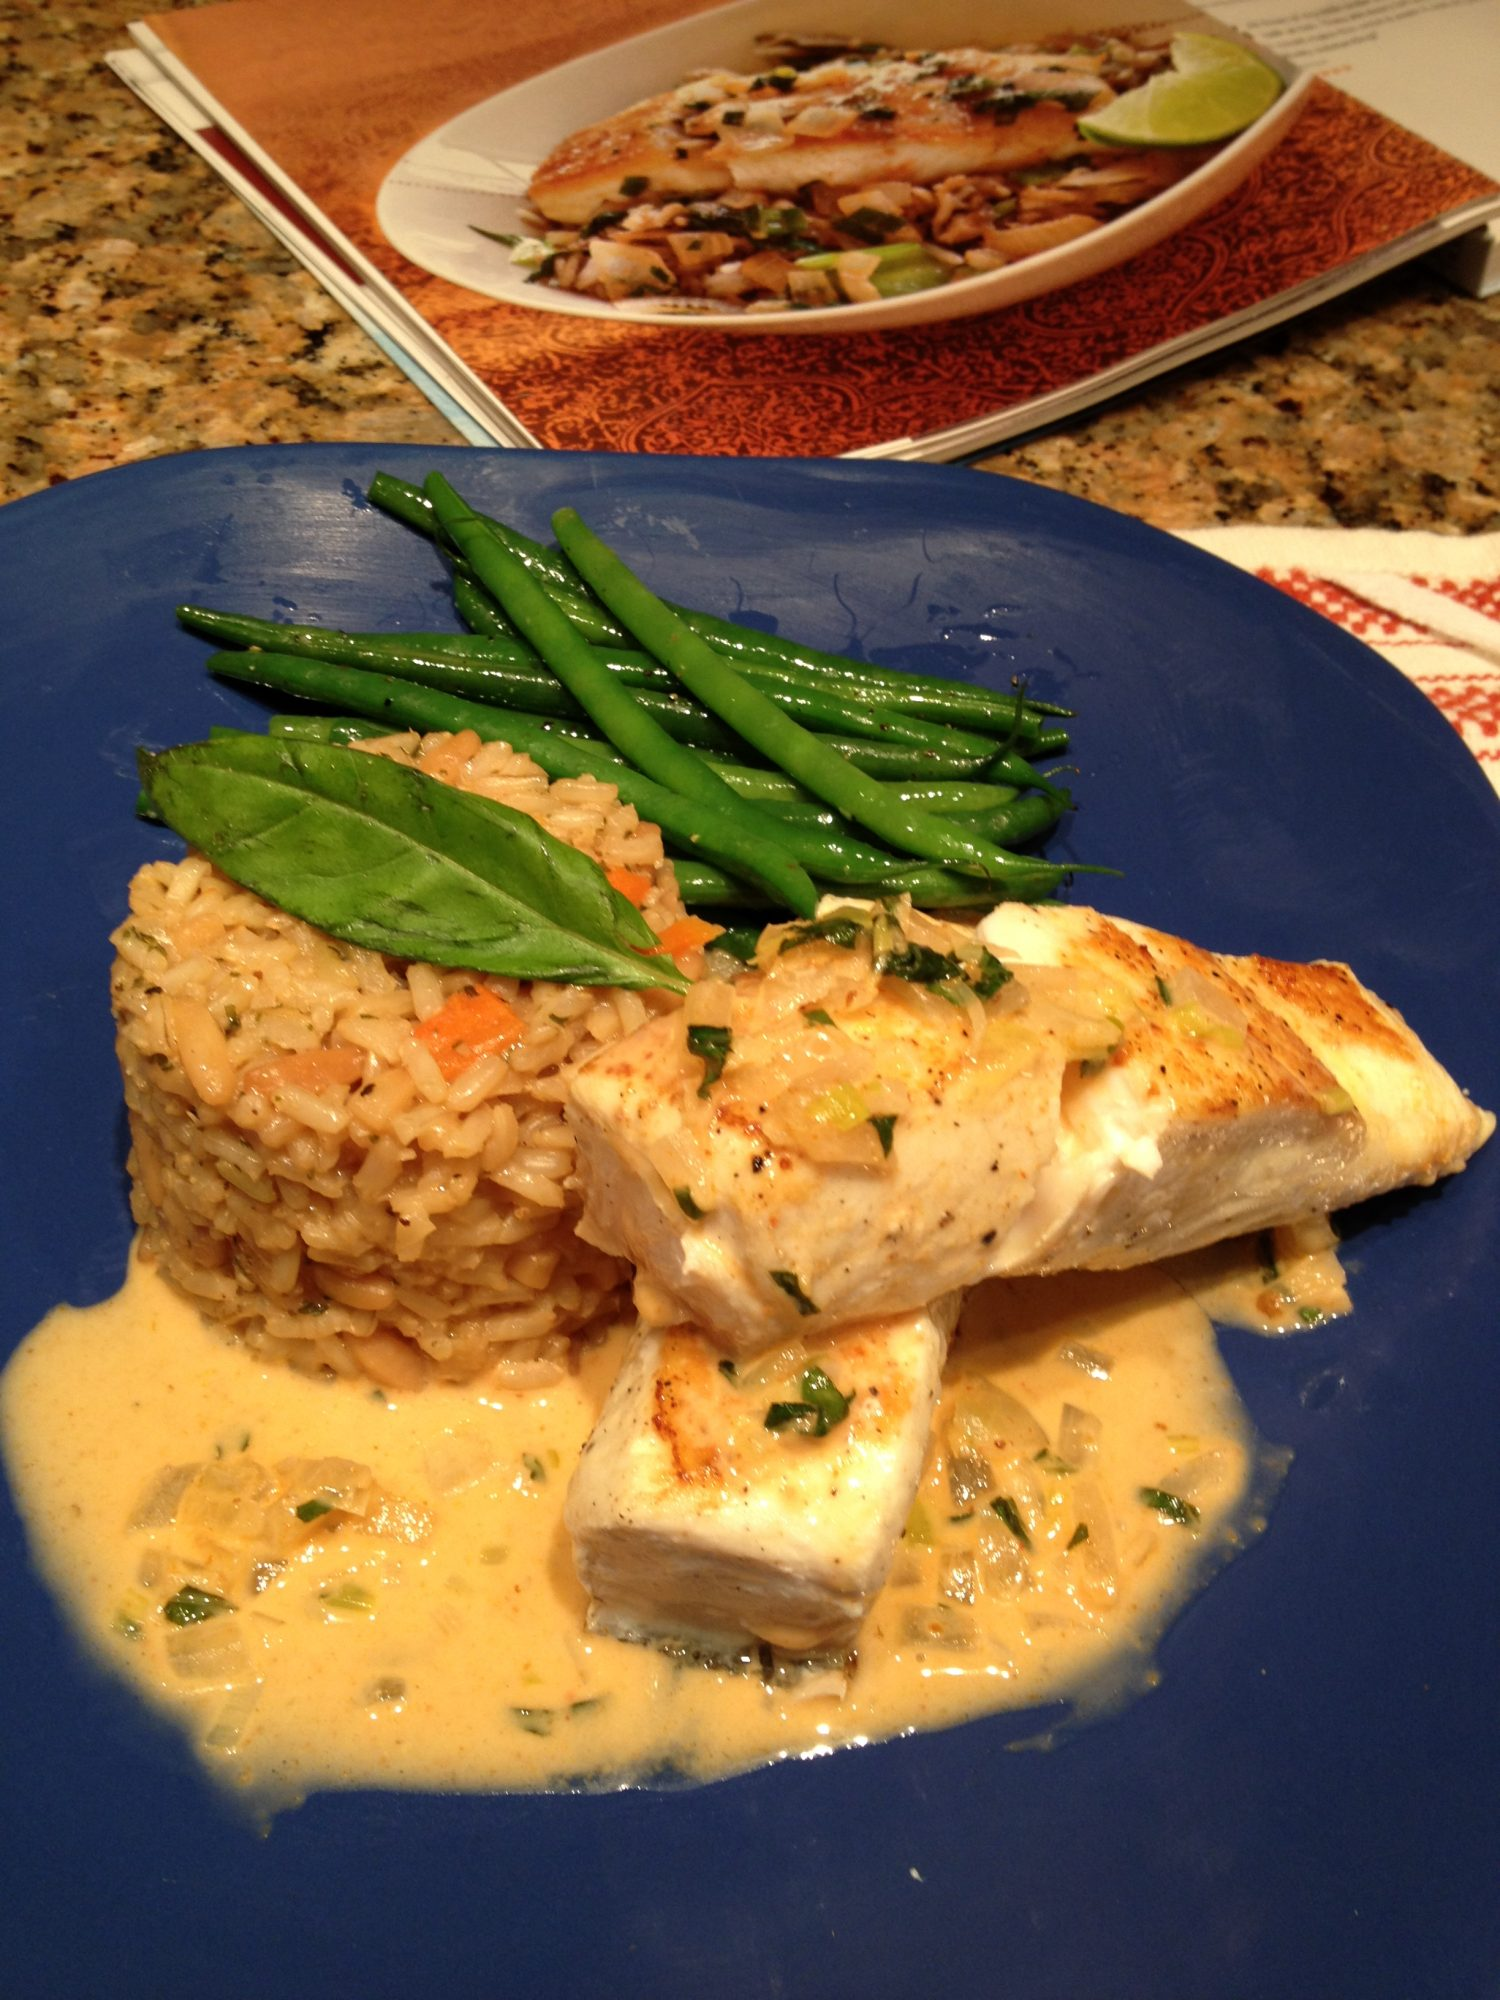 10-halibut-finished.jpg